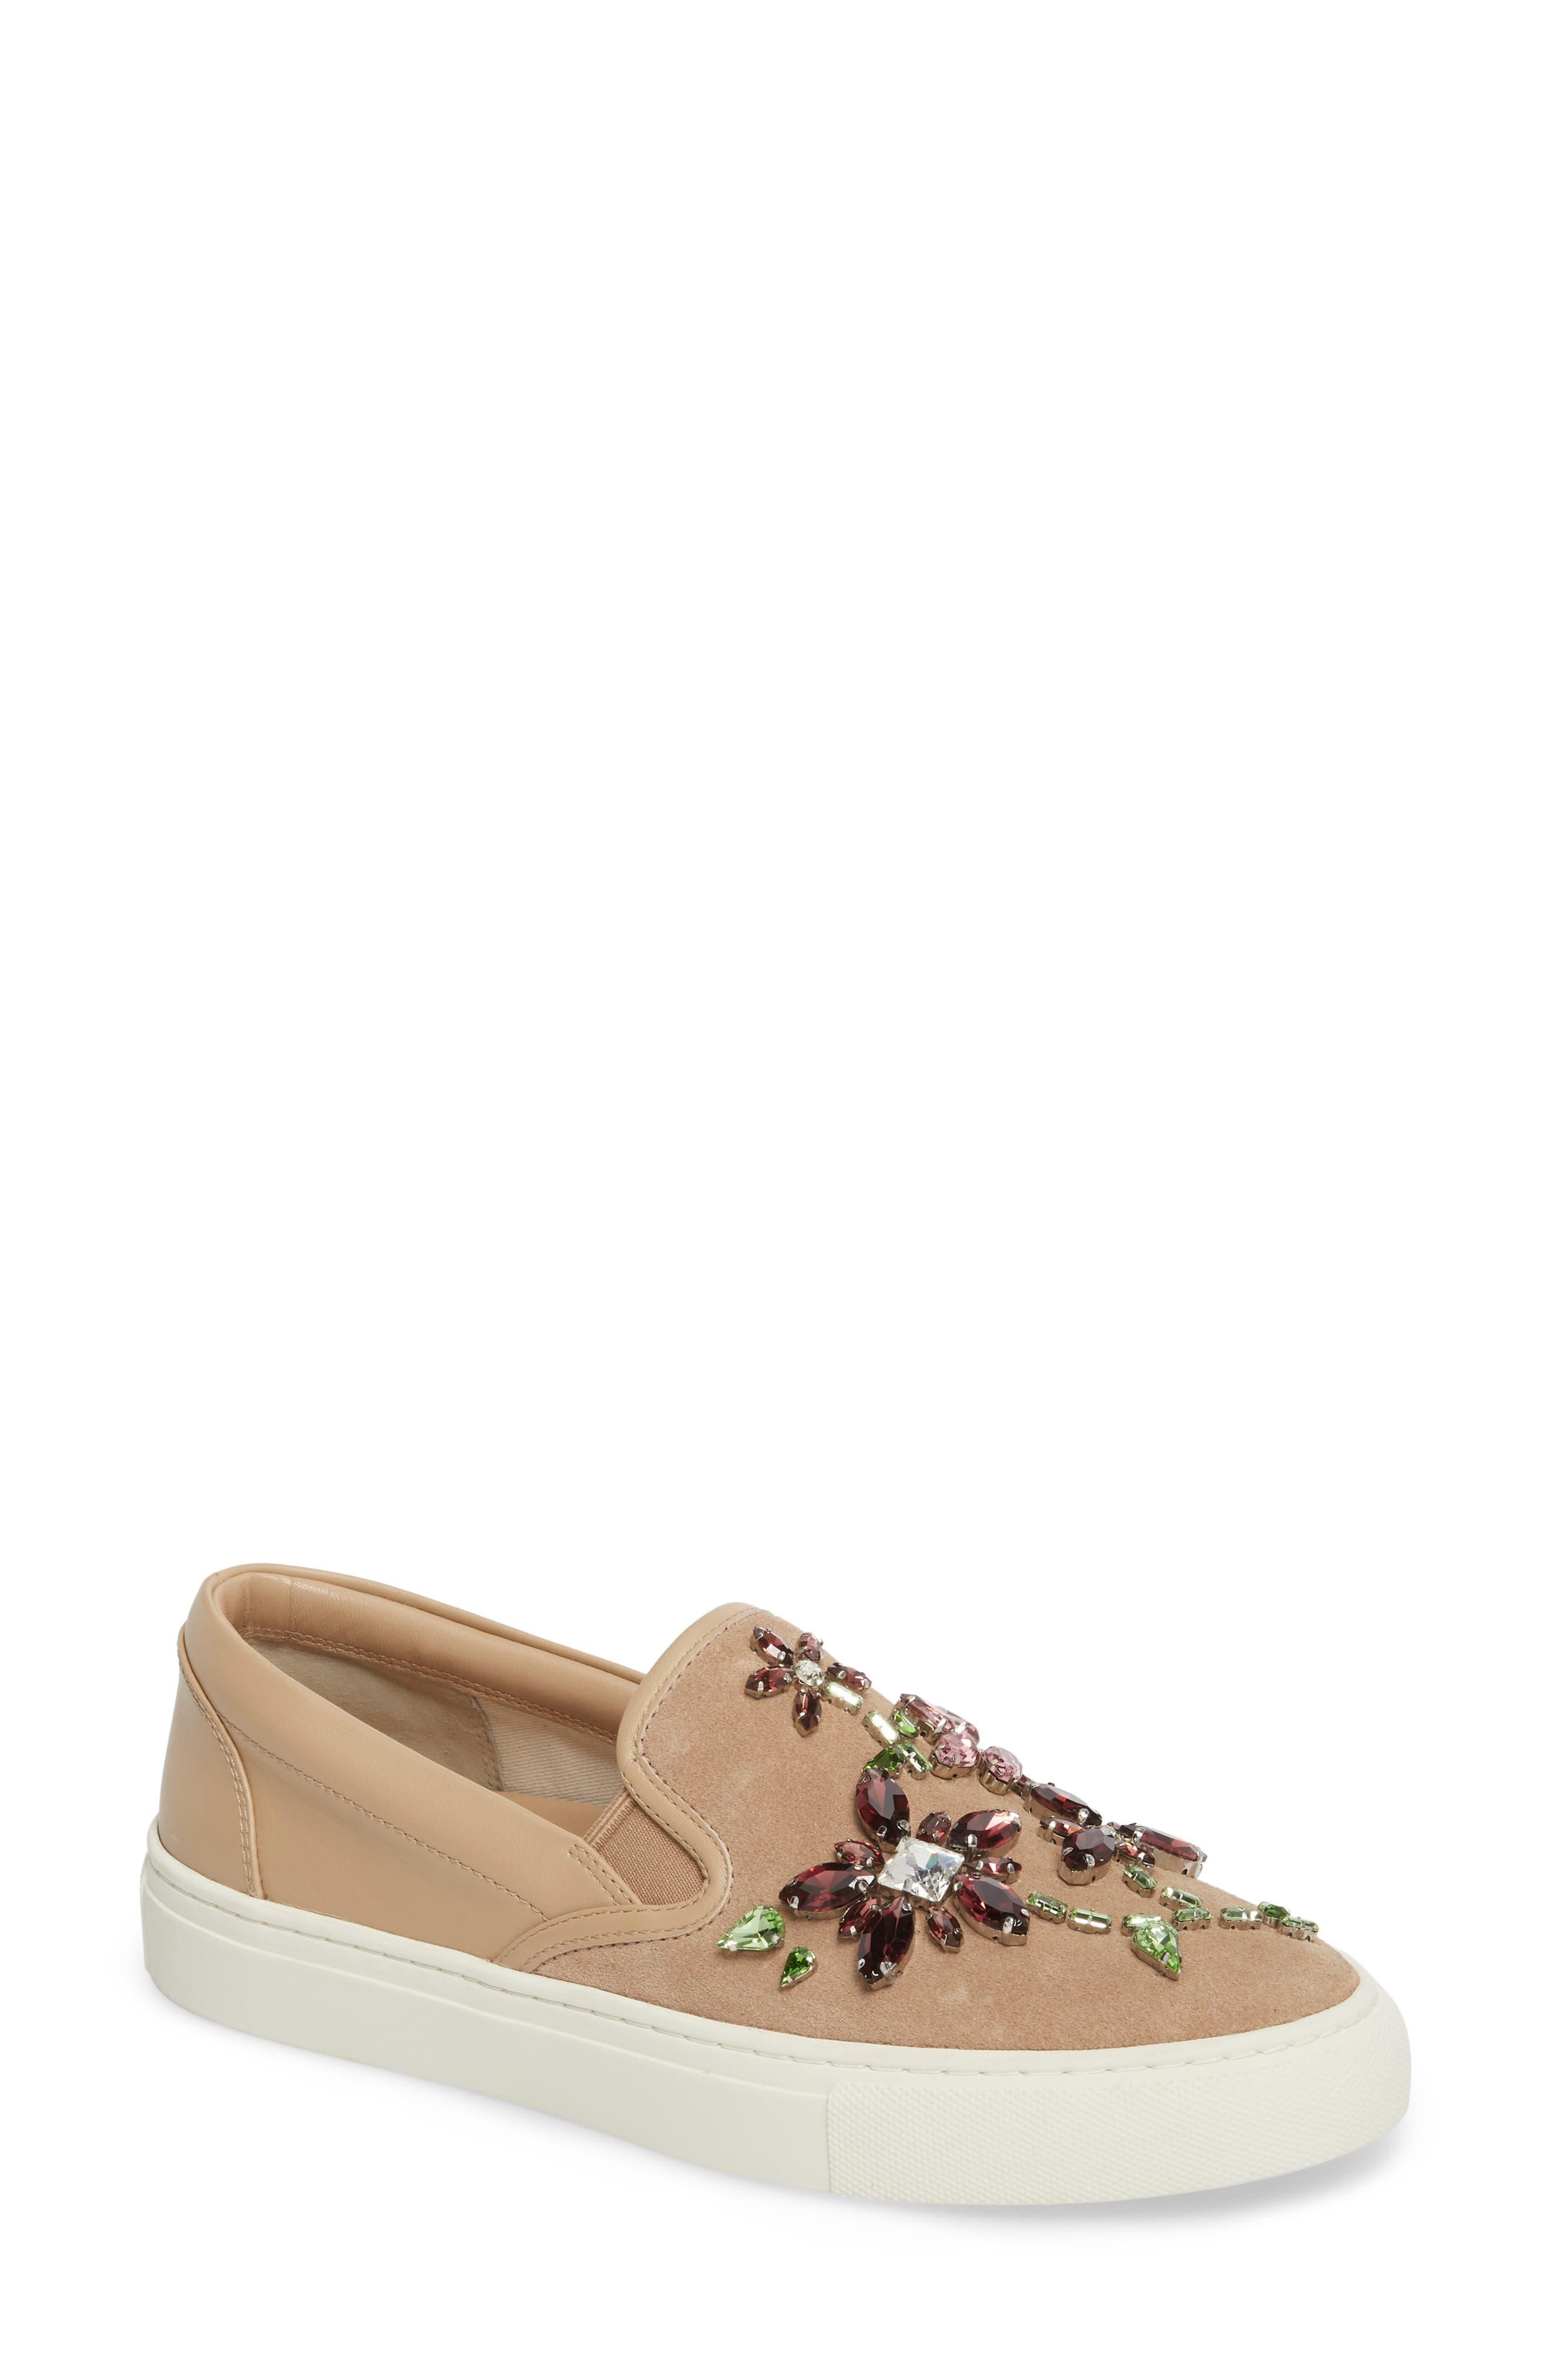 Meadow Embellished Slip-On Sneaker,                         Main,                         color, Perfect Sand/ Multi